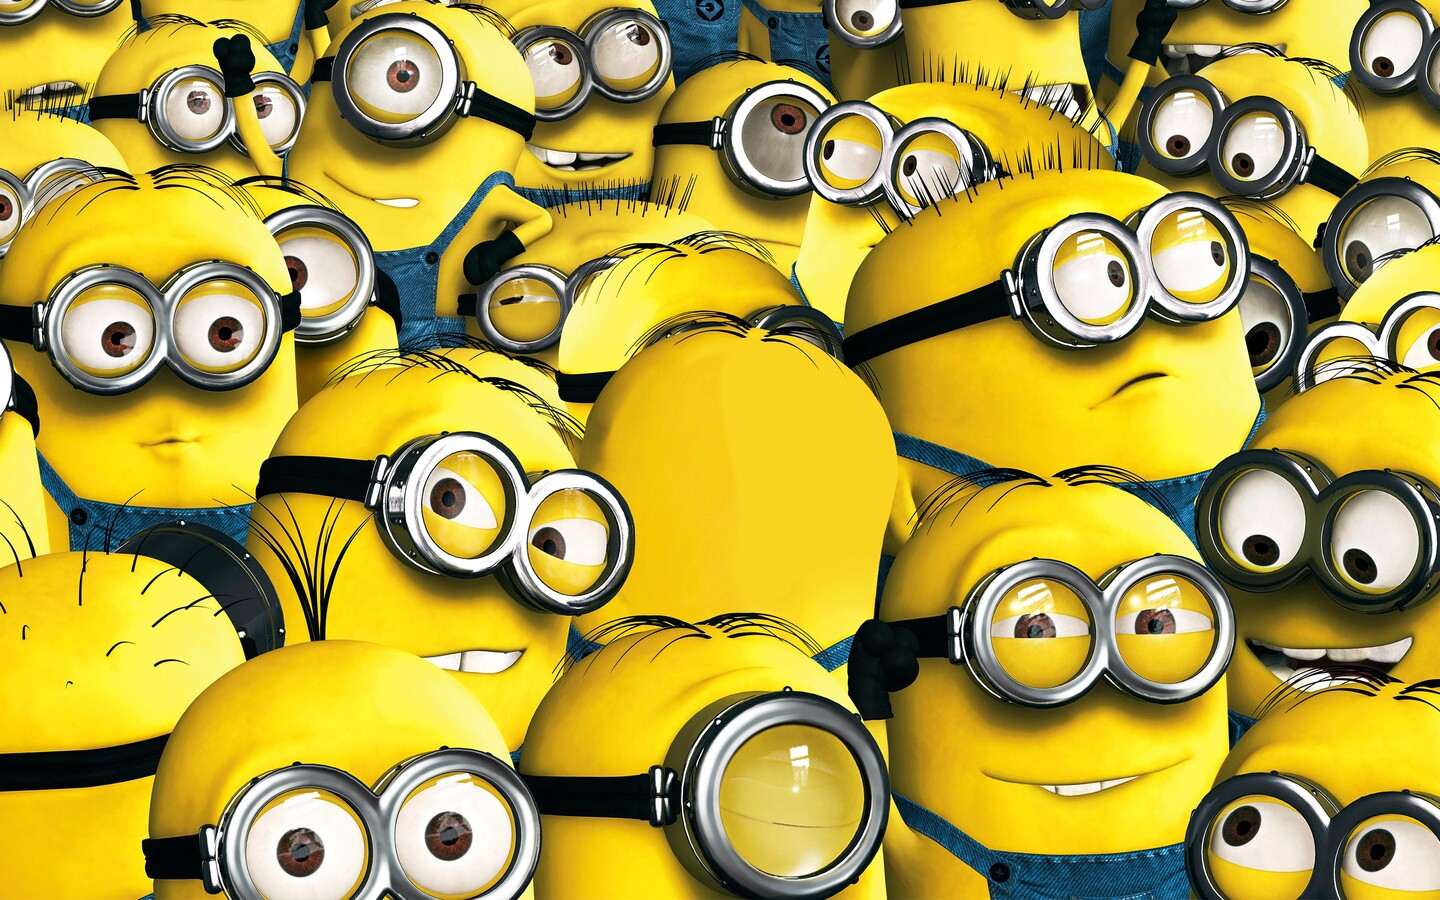 1440x900 Despicable Me Minions 1440x900 Resolution Hd 4k Wallpapers